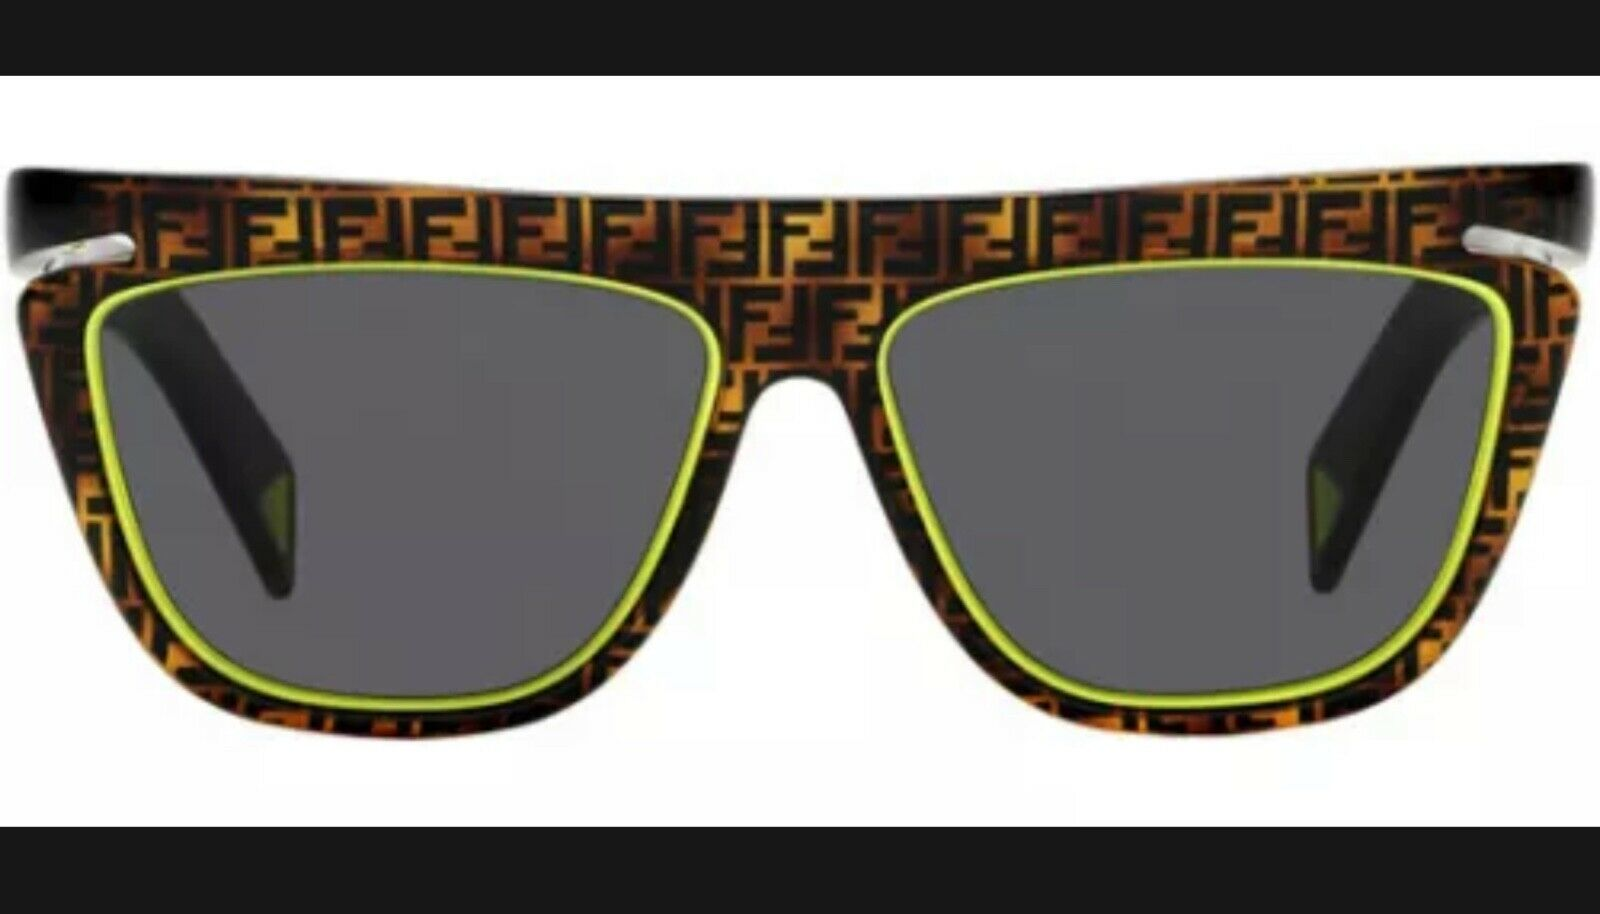 Authentic Fendi Unisex Flat Top Cut-Away Sunglasses - FF0384S - Made in Italy